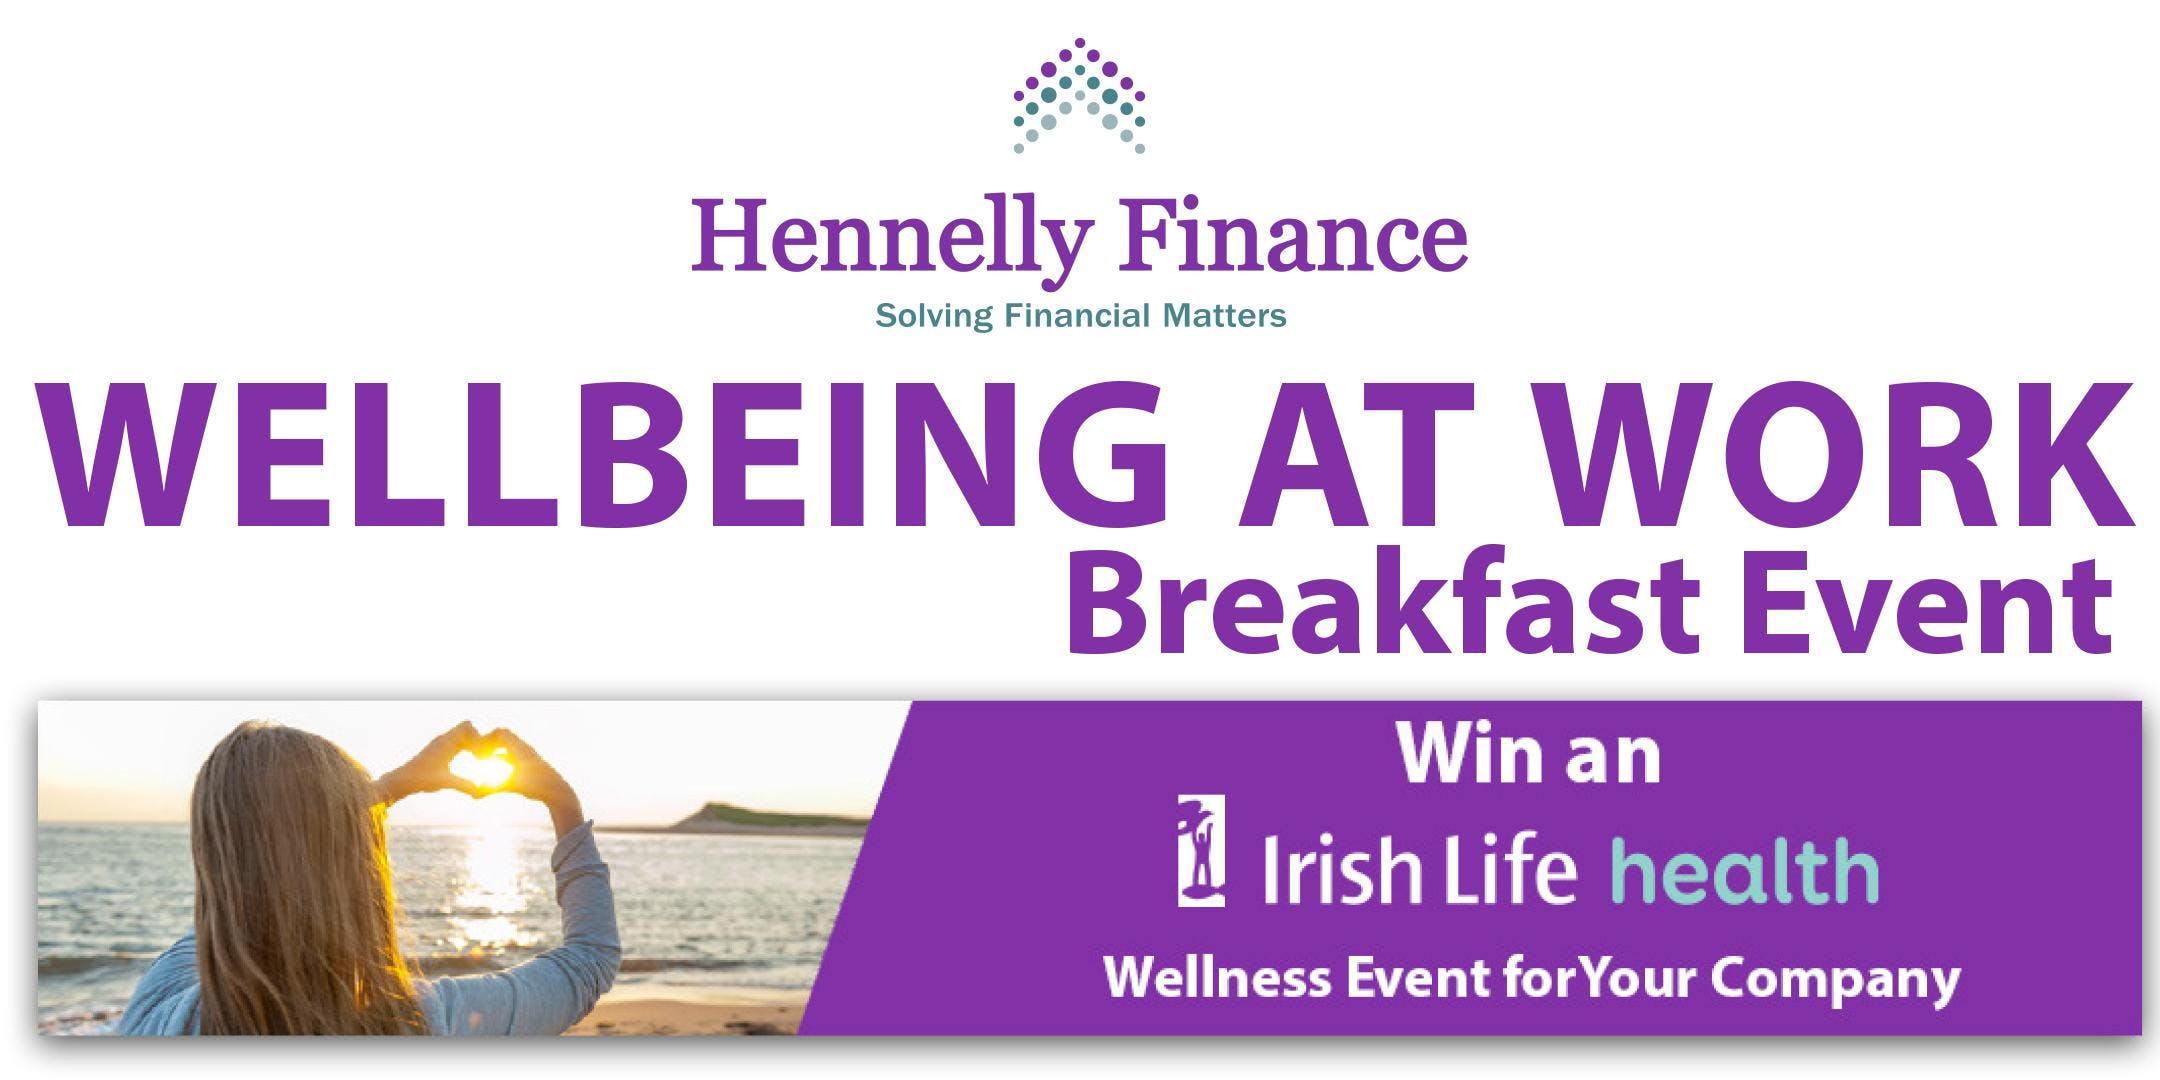 The Wellbeing at Work Breakfast Event